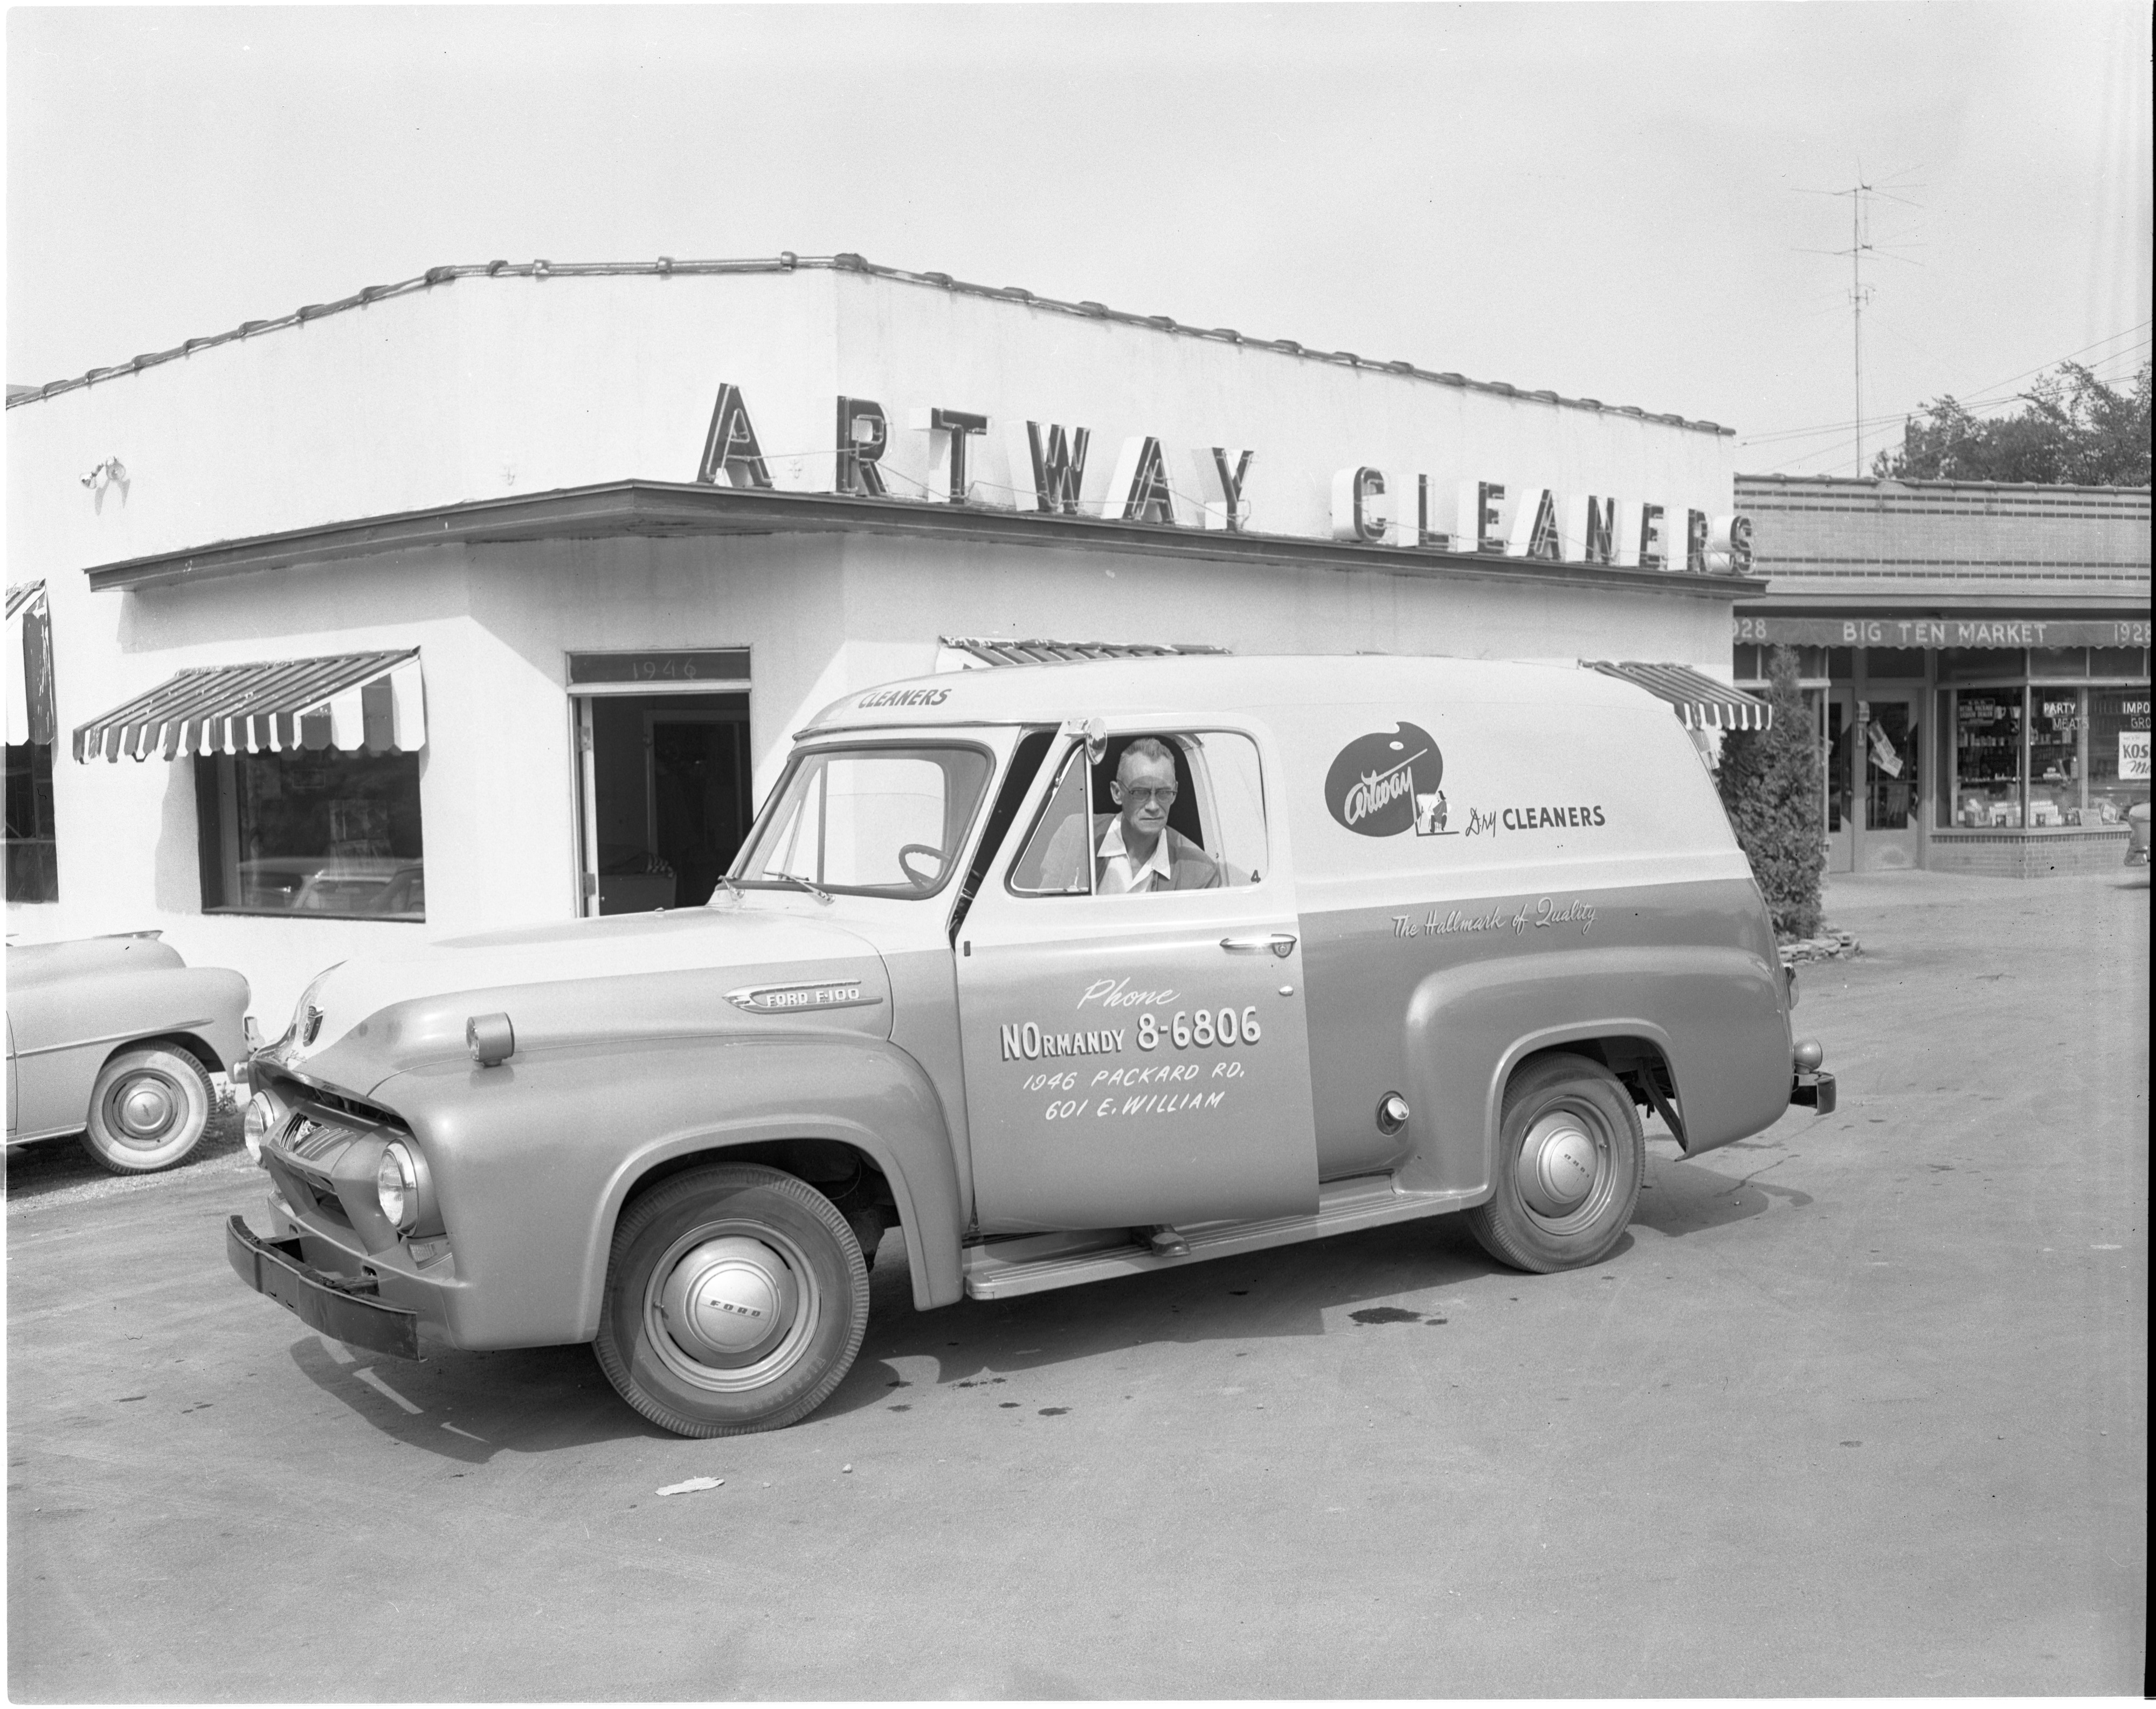 Artway Cleaners - 1946 Packard, August 1954 image